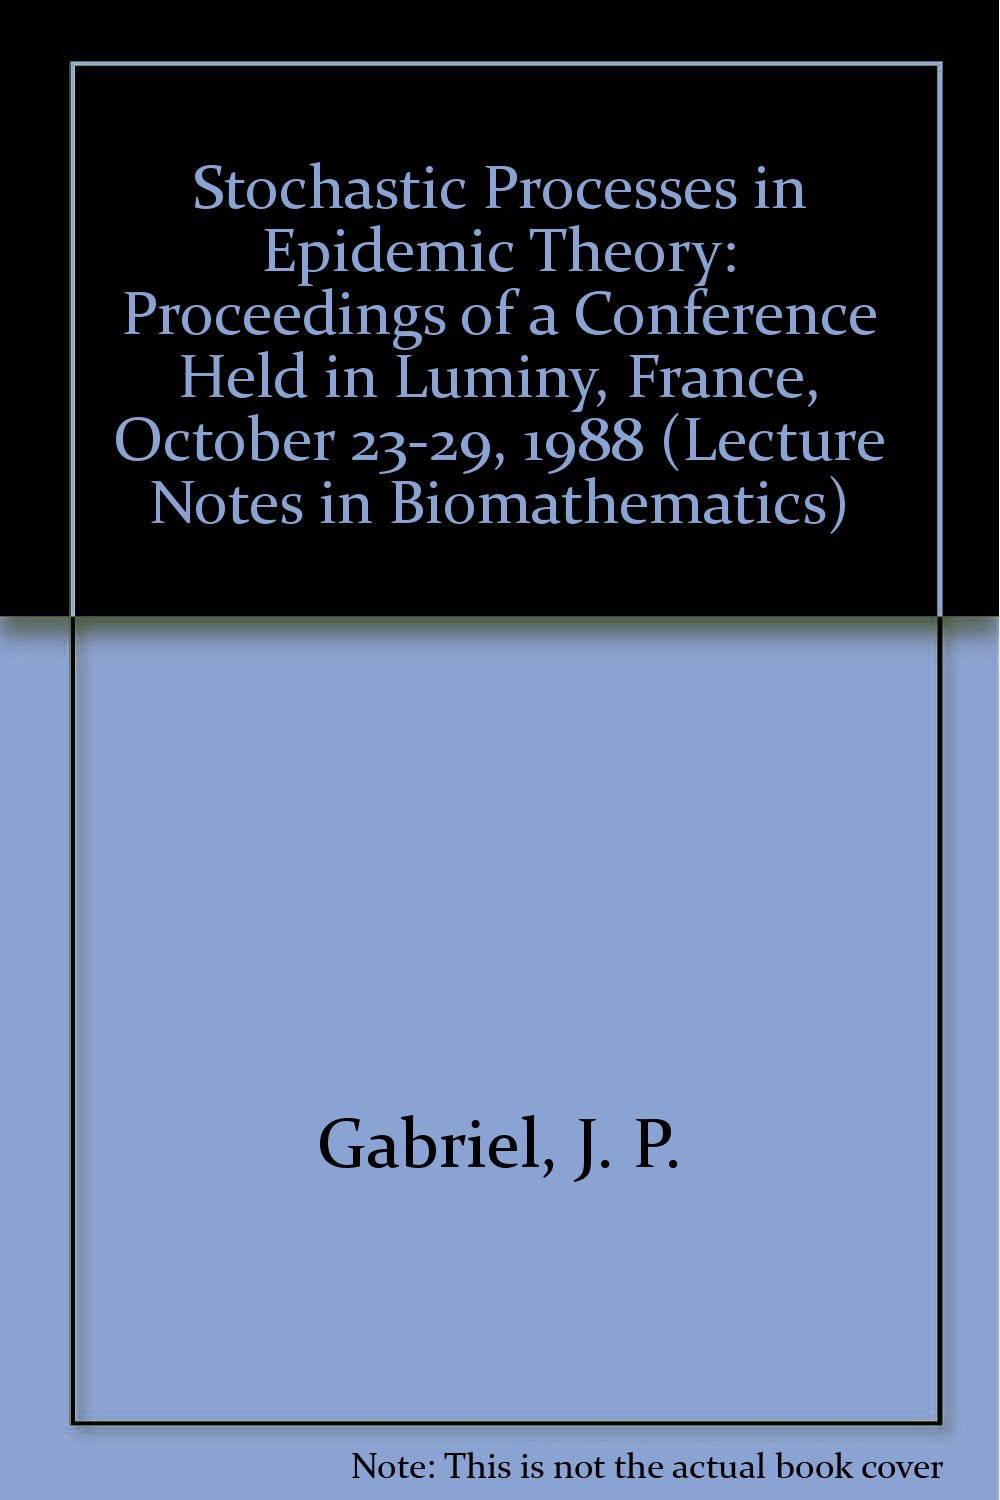 Stochastic Processes in Epidemic Theory: Proceedings of a Conference Held in Luminy France October 23-29 1988 (Lecture Notes in Biomathematics)